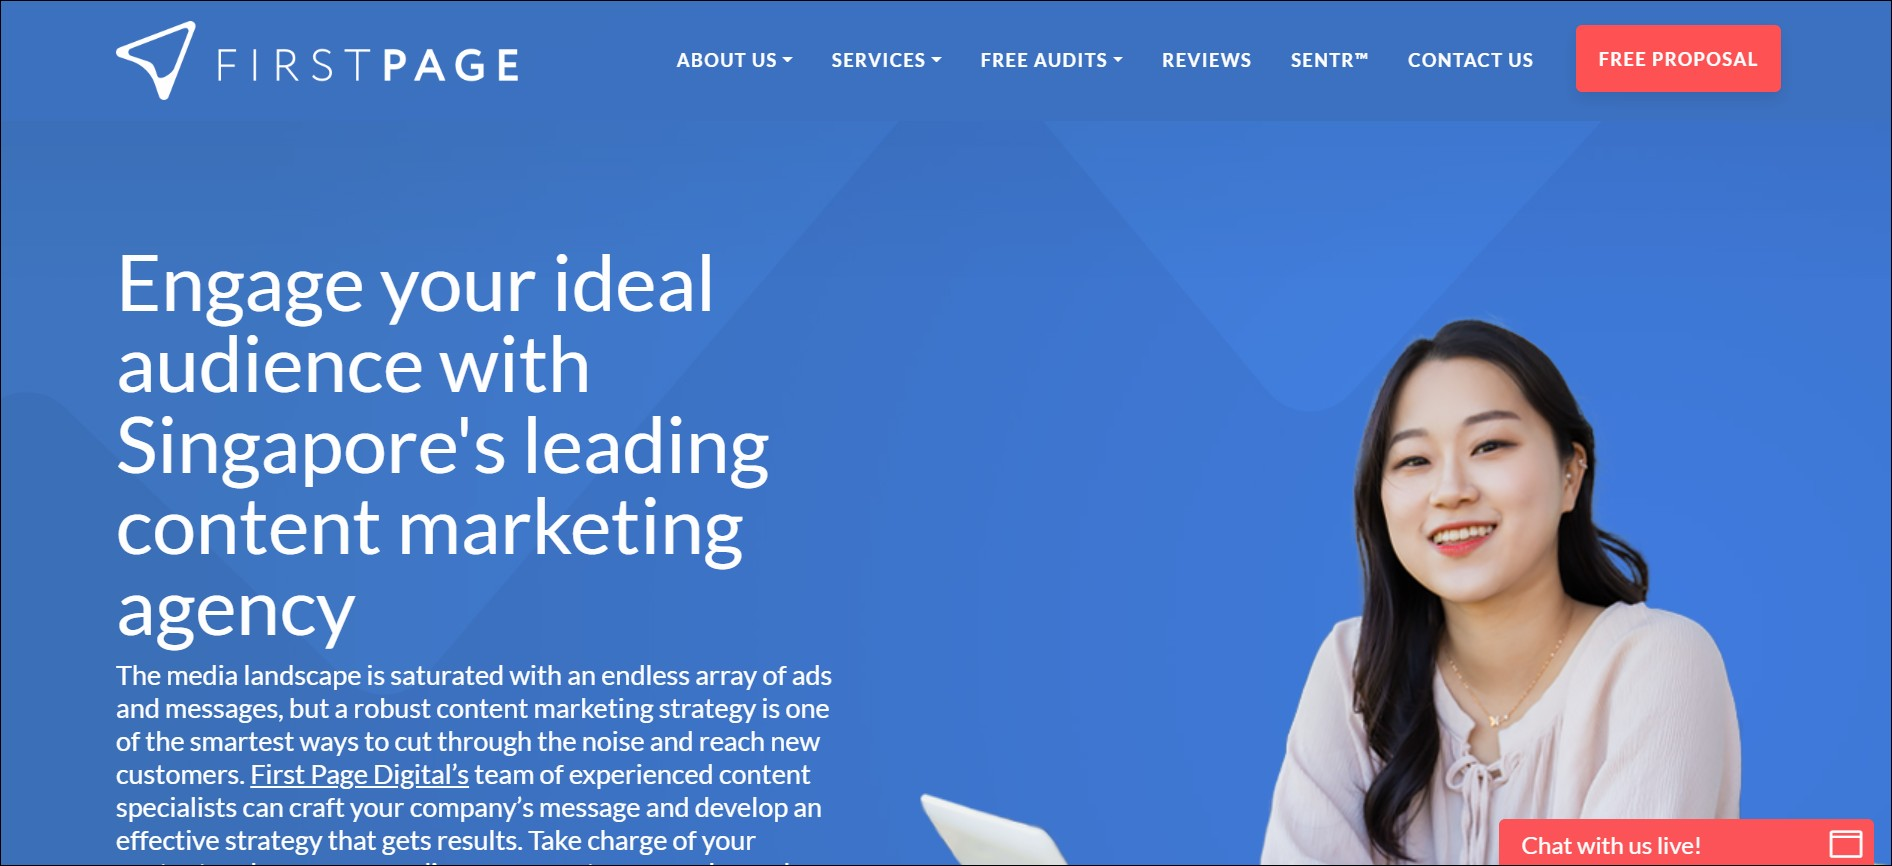 First Page: content marketing agencies in South East Asia